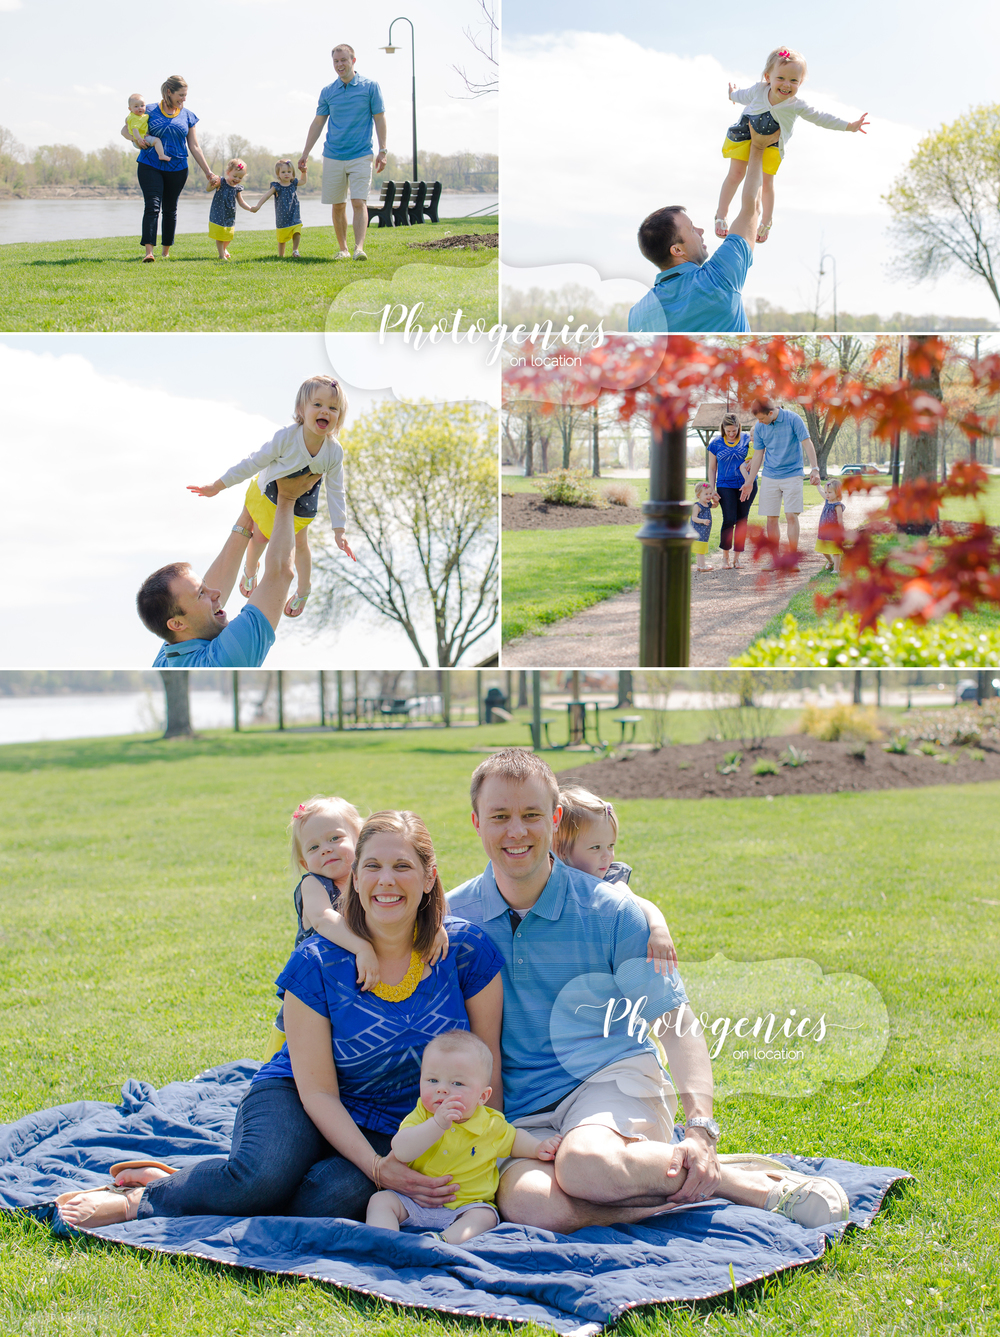 spring_photography_twins_family_sunny_three_kids 2.jpg